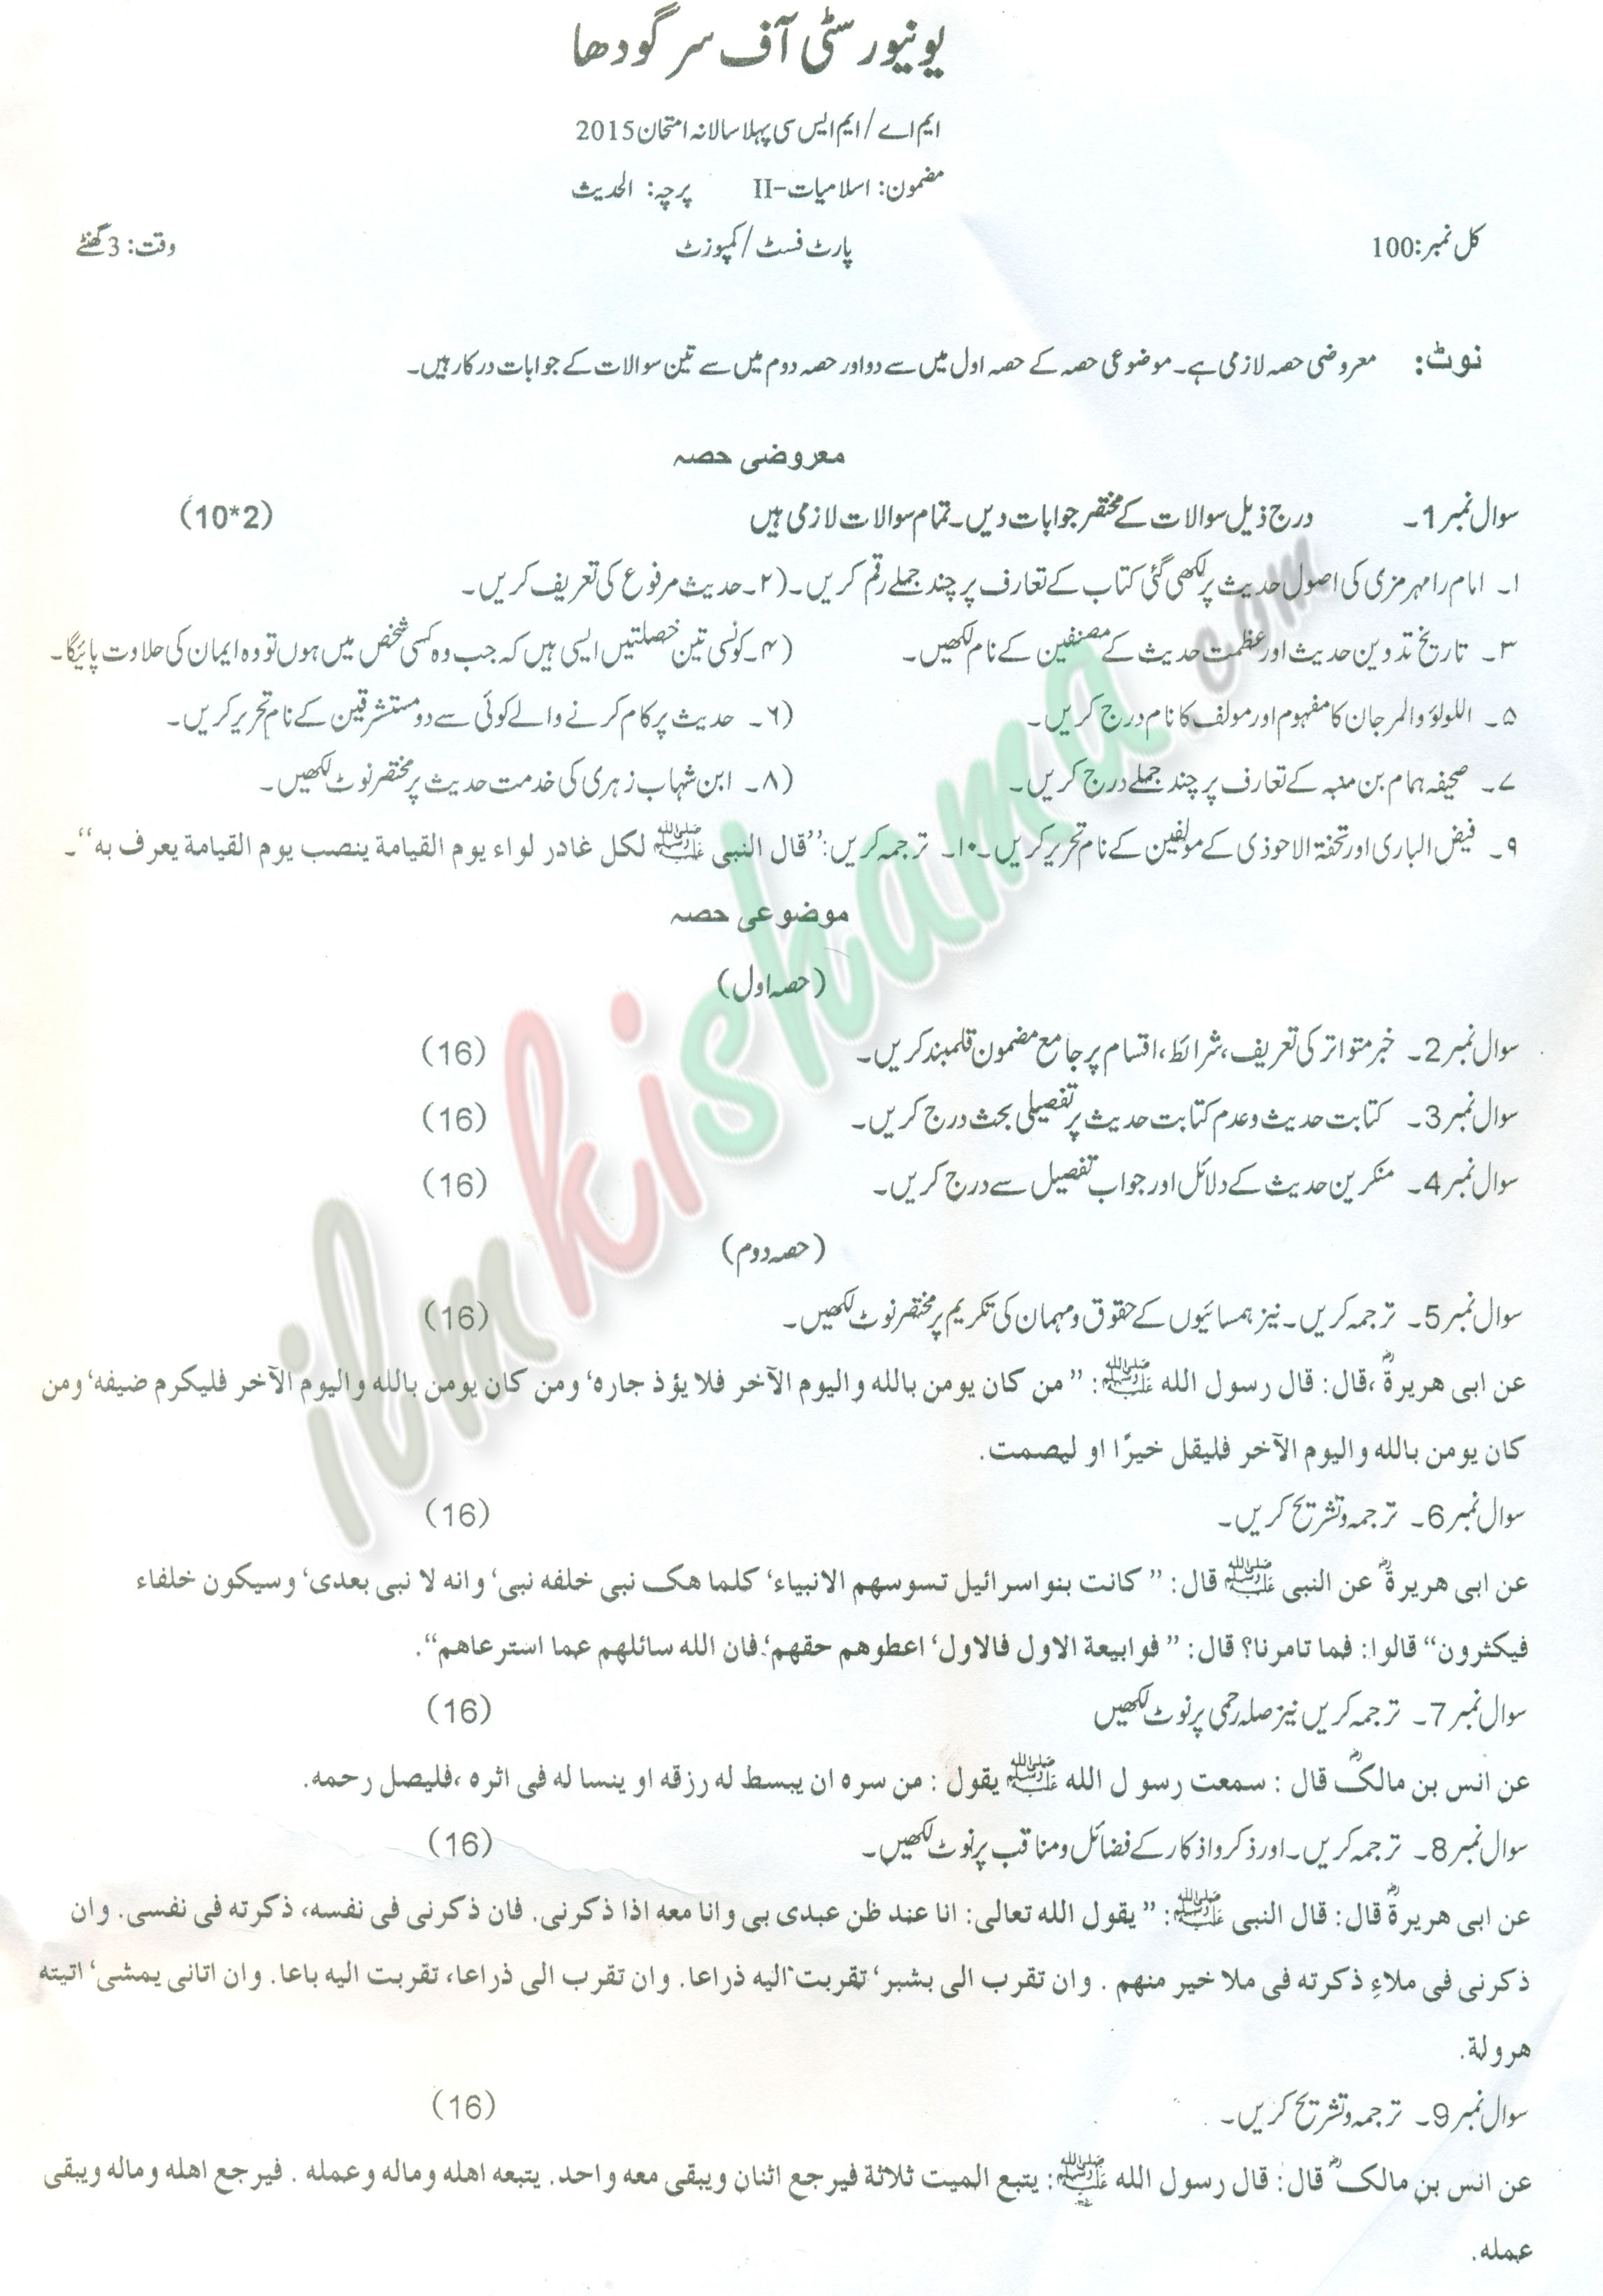 MA ISLAMIC STUDIES PART-1 1ST 2015 (2)